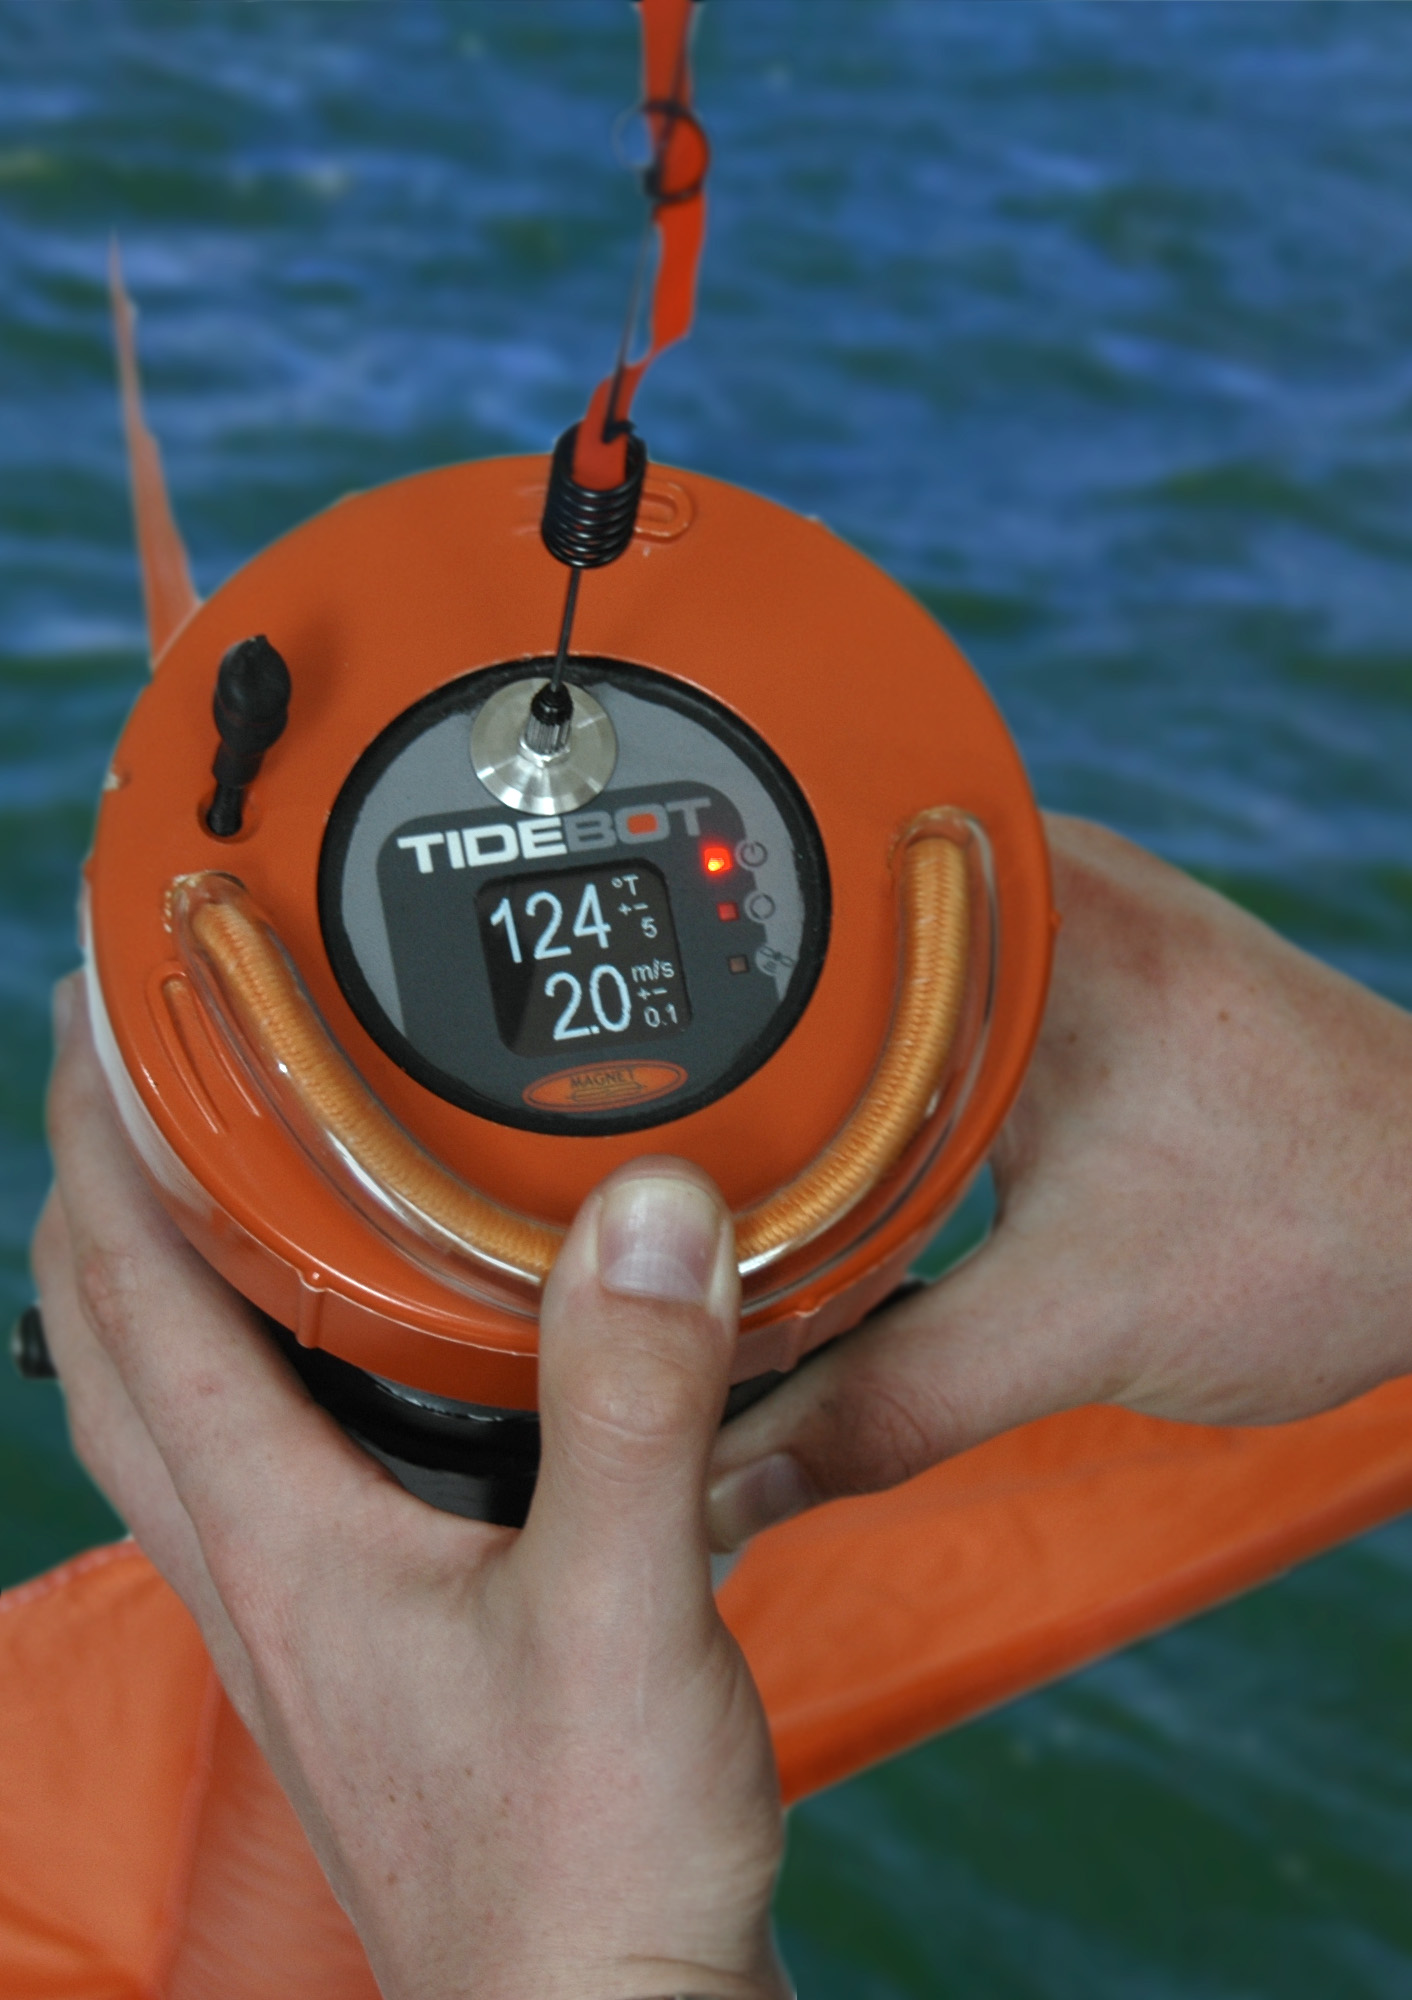 TideBot tide measurement system lying on side